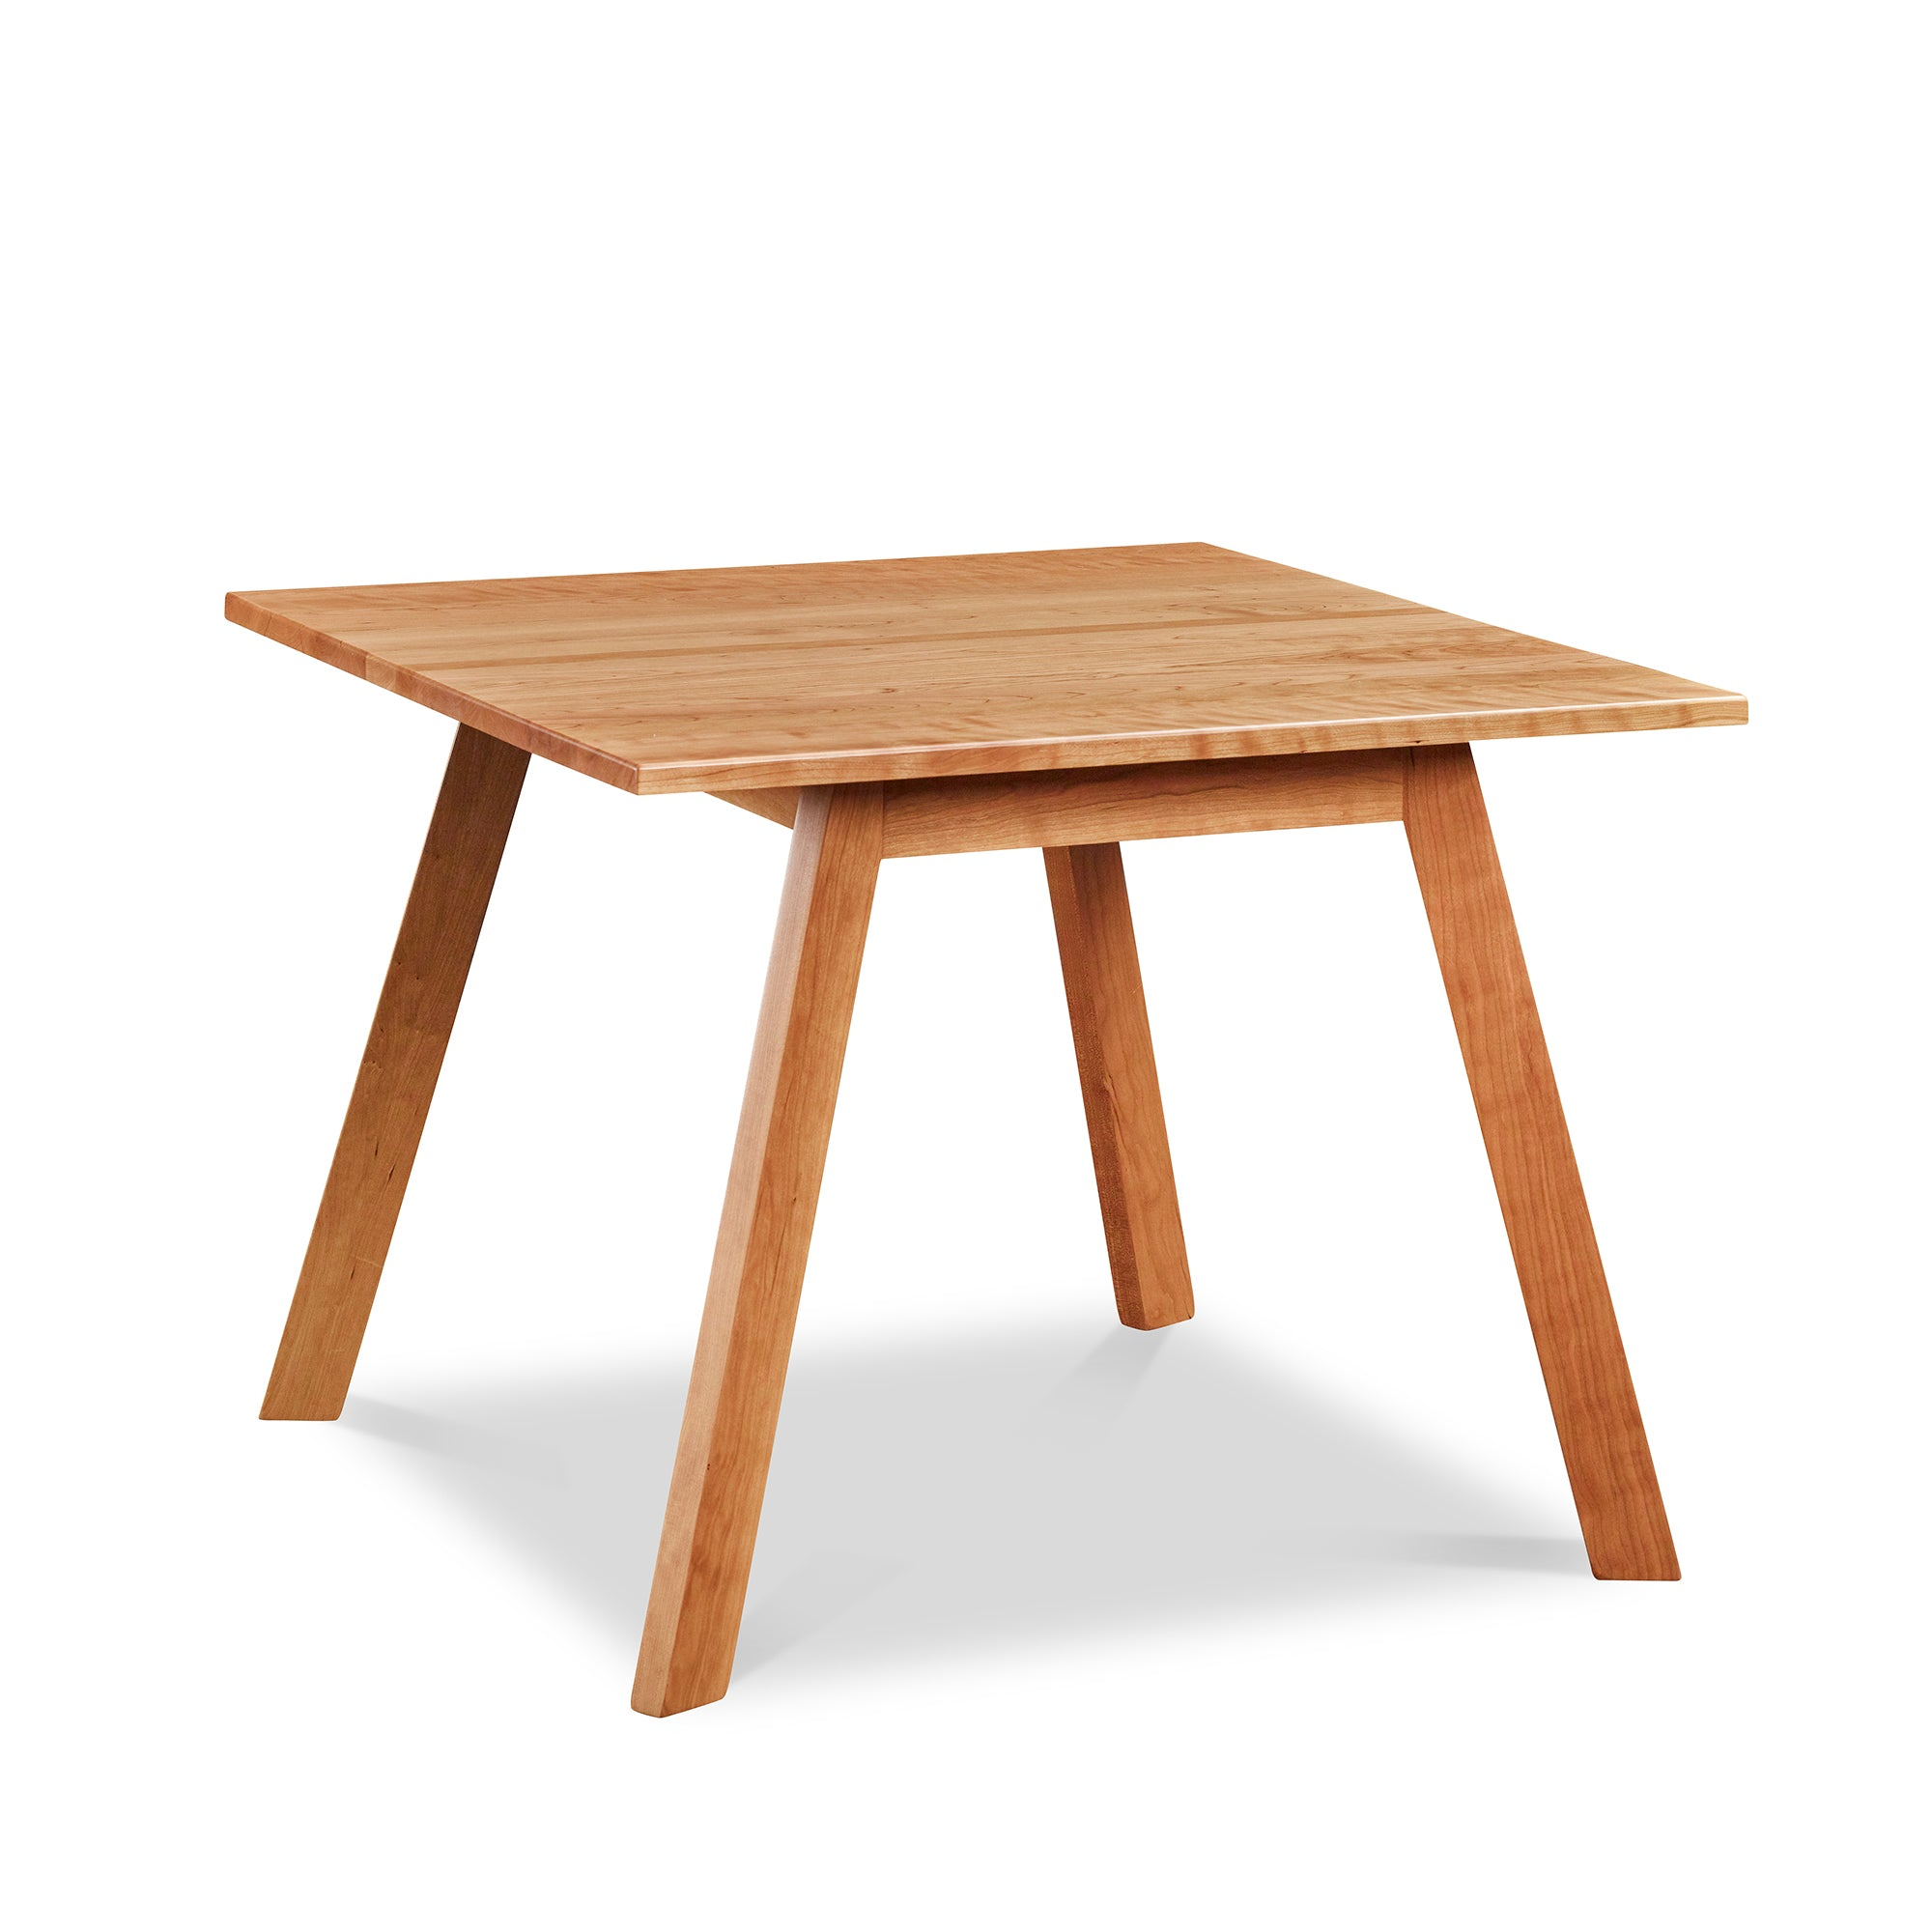 Square modern dining table with angled legs in cherry, from Maine's Chilton Furniture Co.